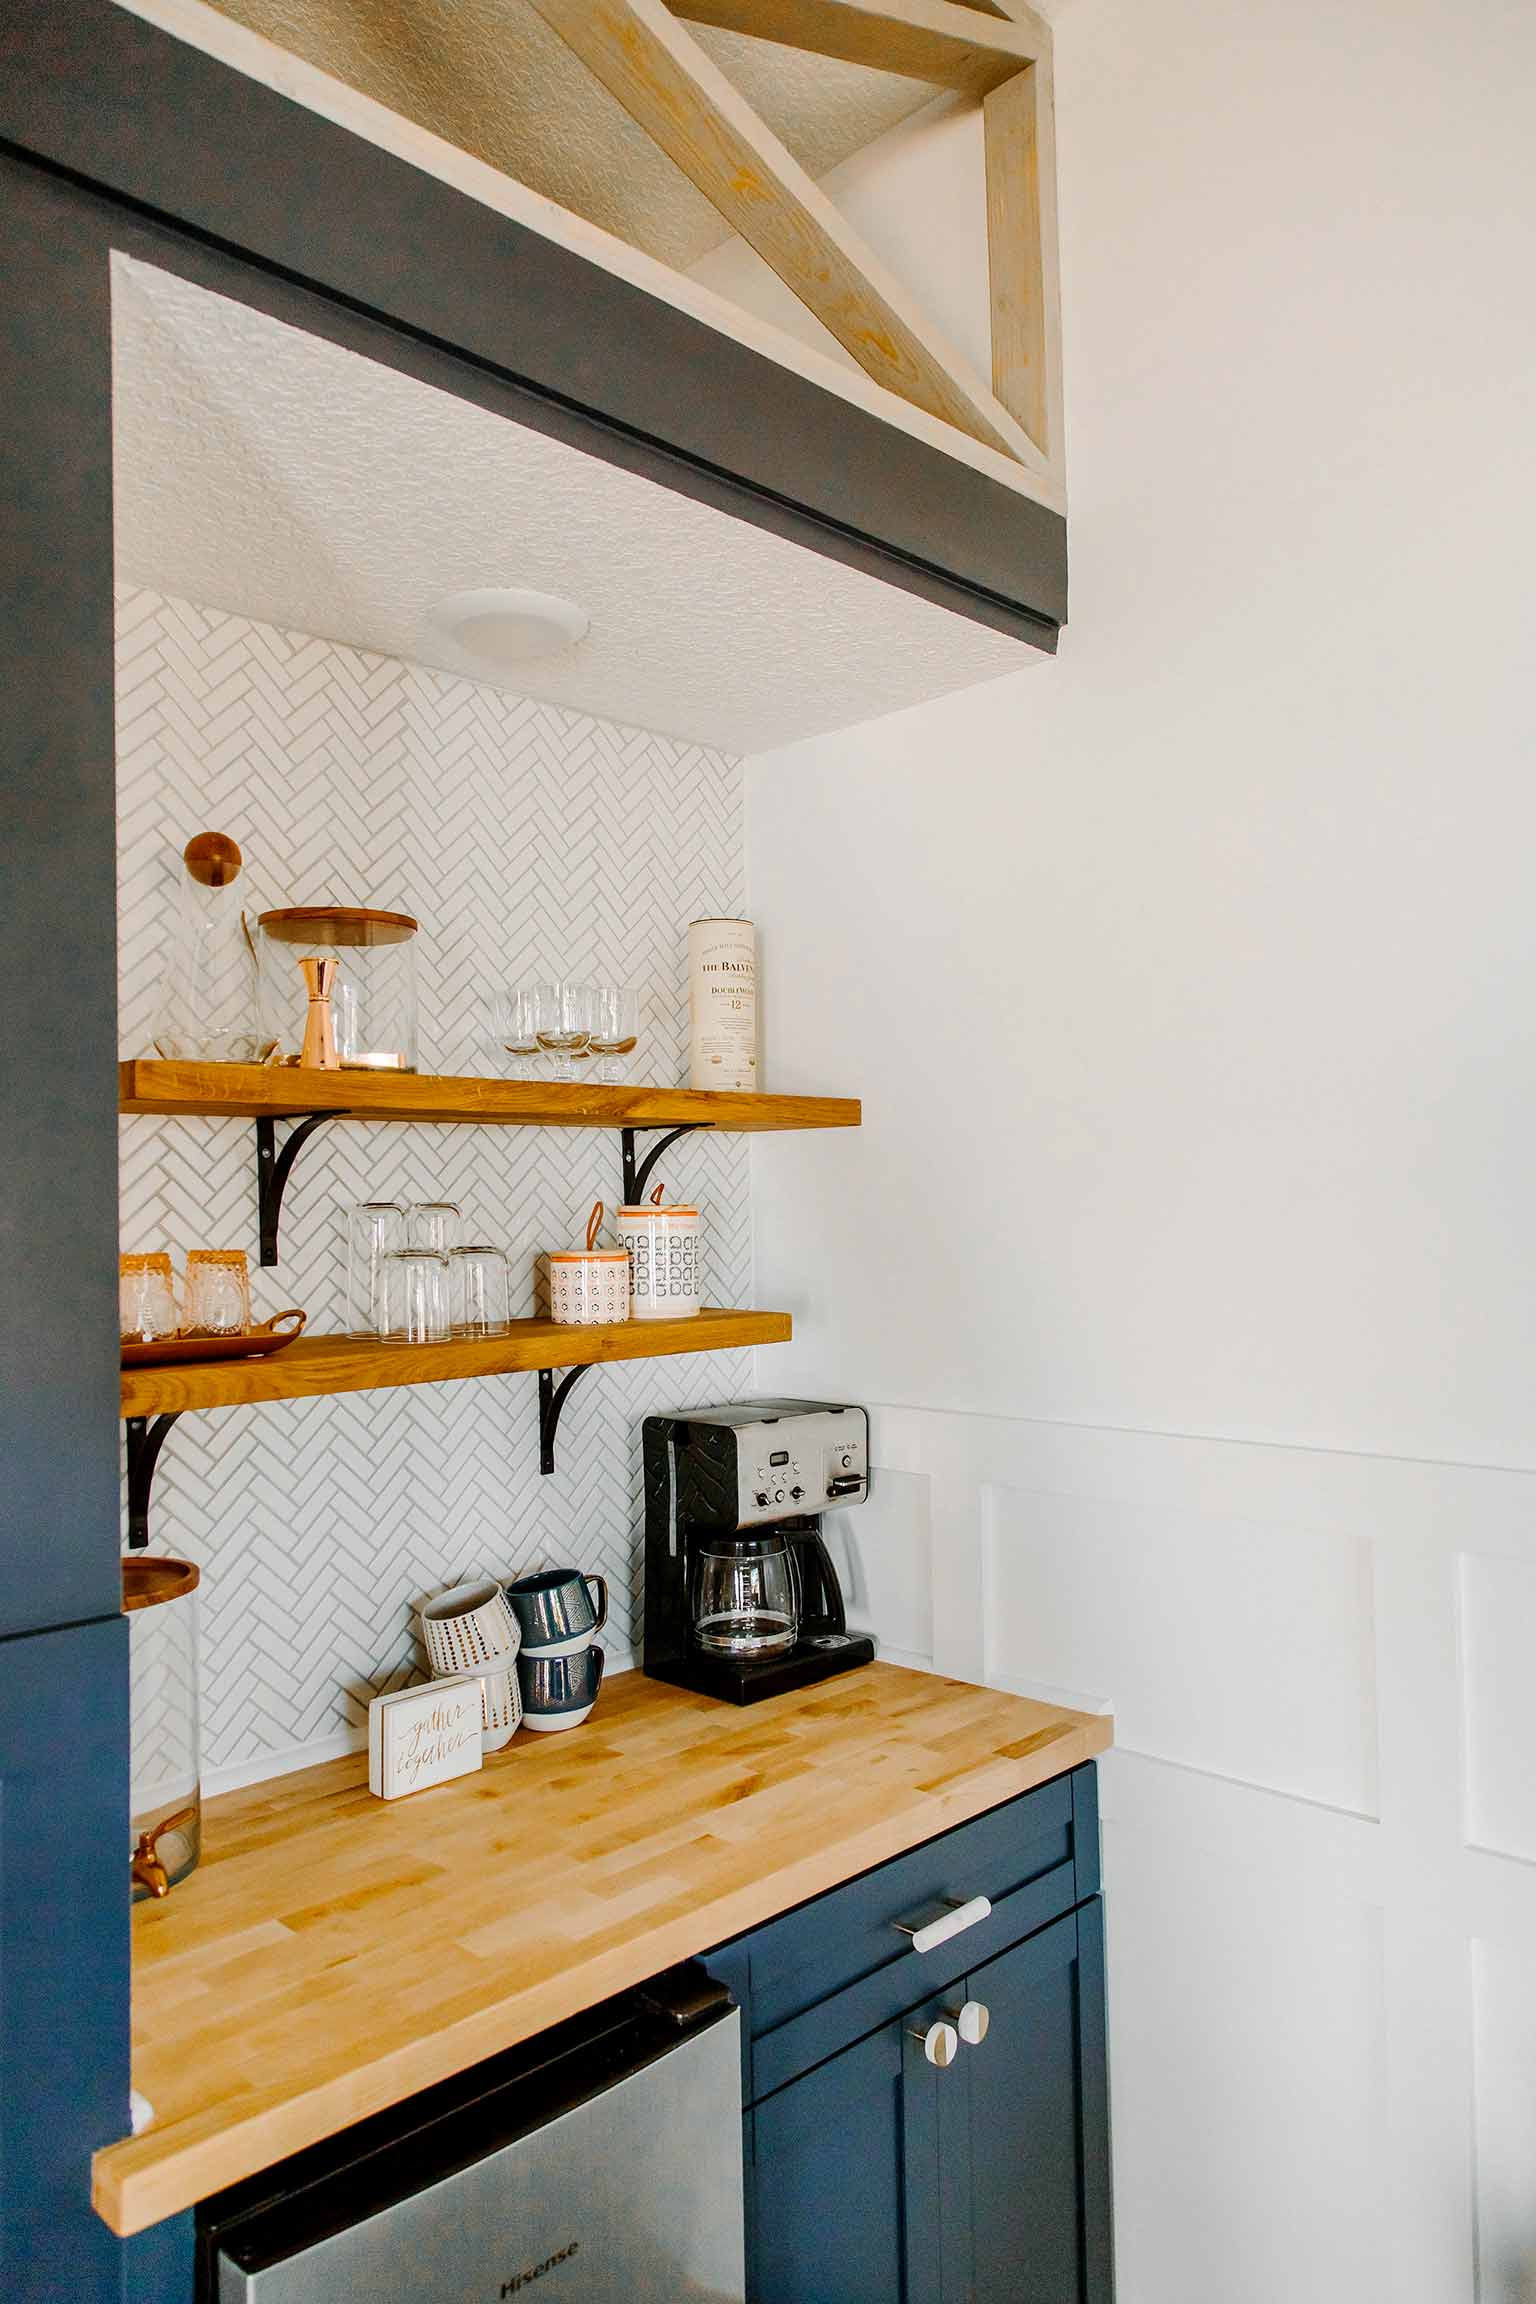 Kitchenette with hale navy cabinets, open shelving and herringbone tile - The Guest House Reveal - That Homebird Life Blog